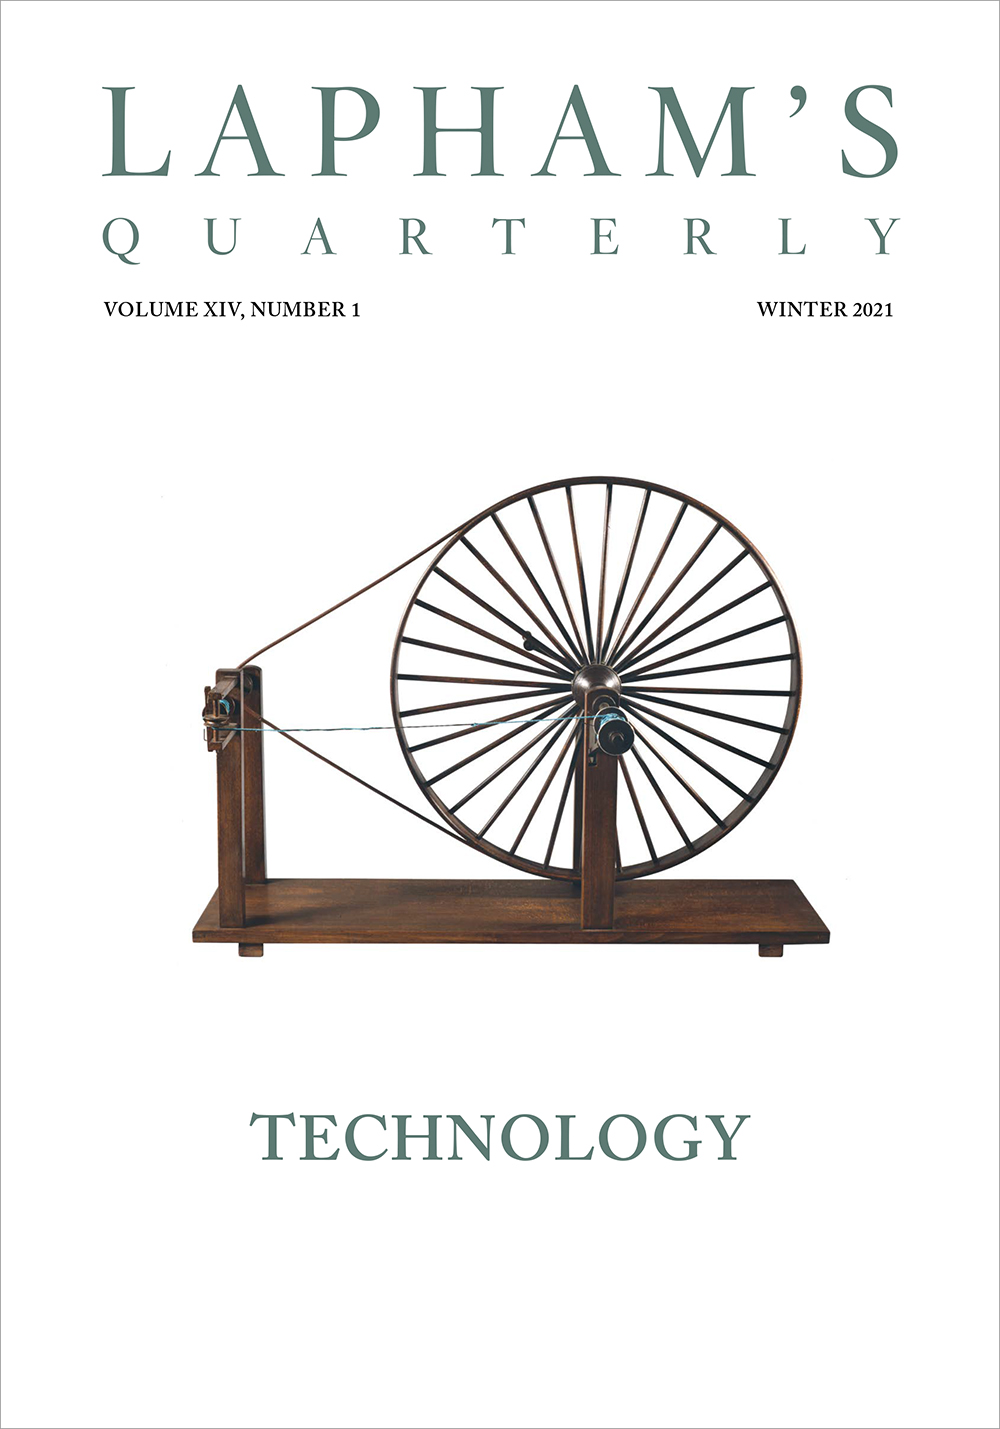 Cover of Technology, the new issue of Lapham's Quarterly